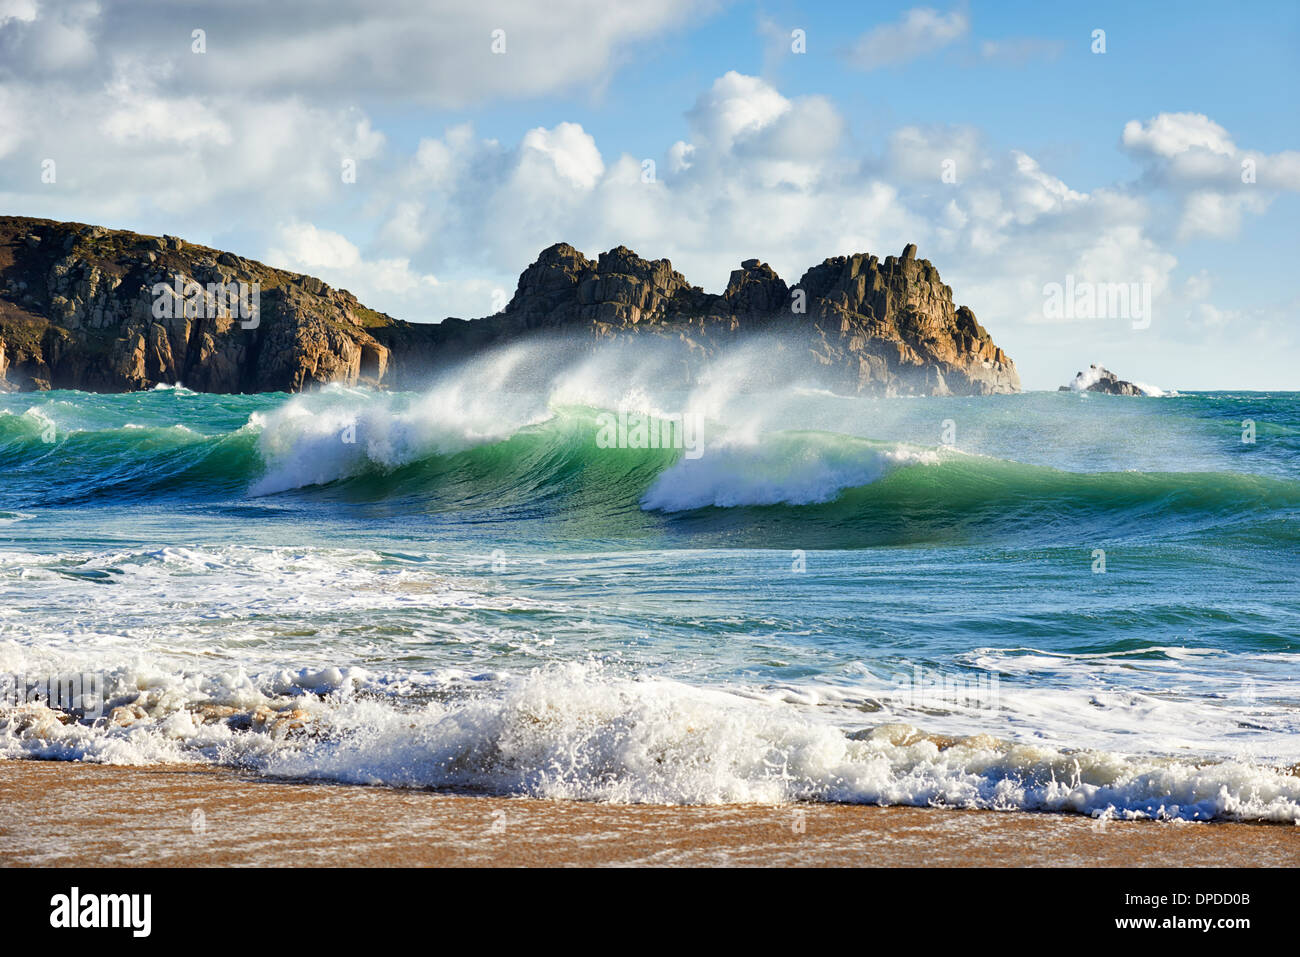 A curling wave breaking at Porthcurno beach, West Cornwall - Stock Image